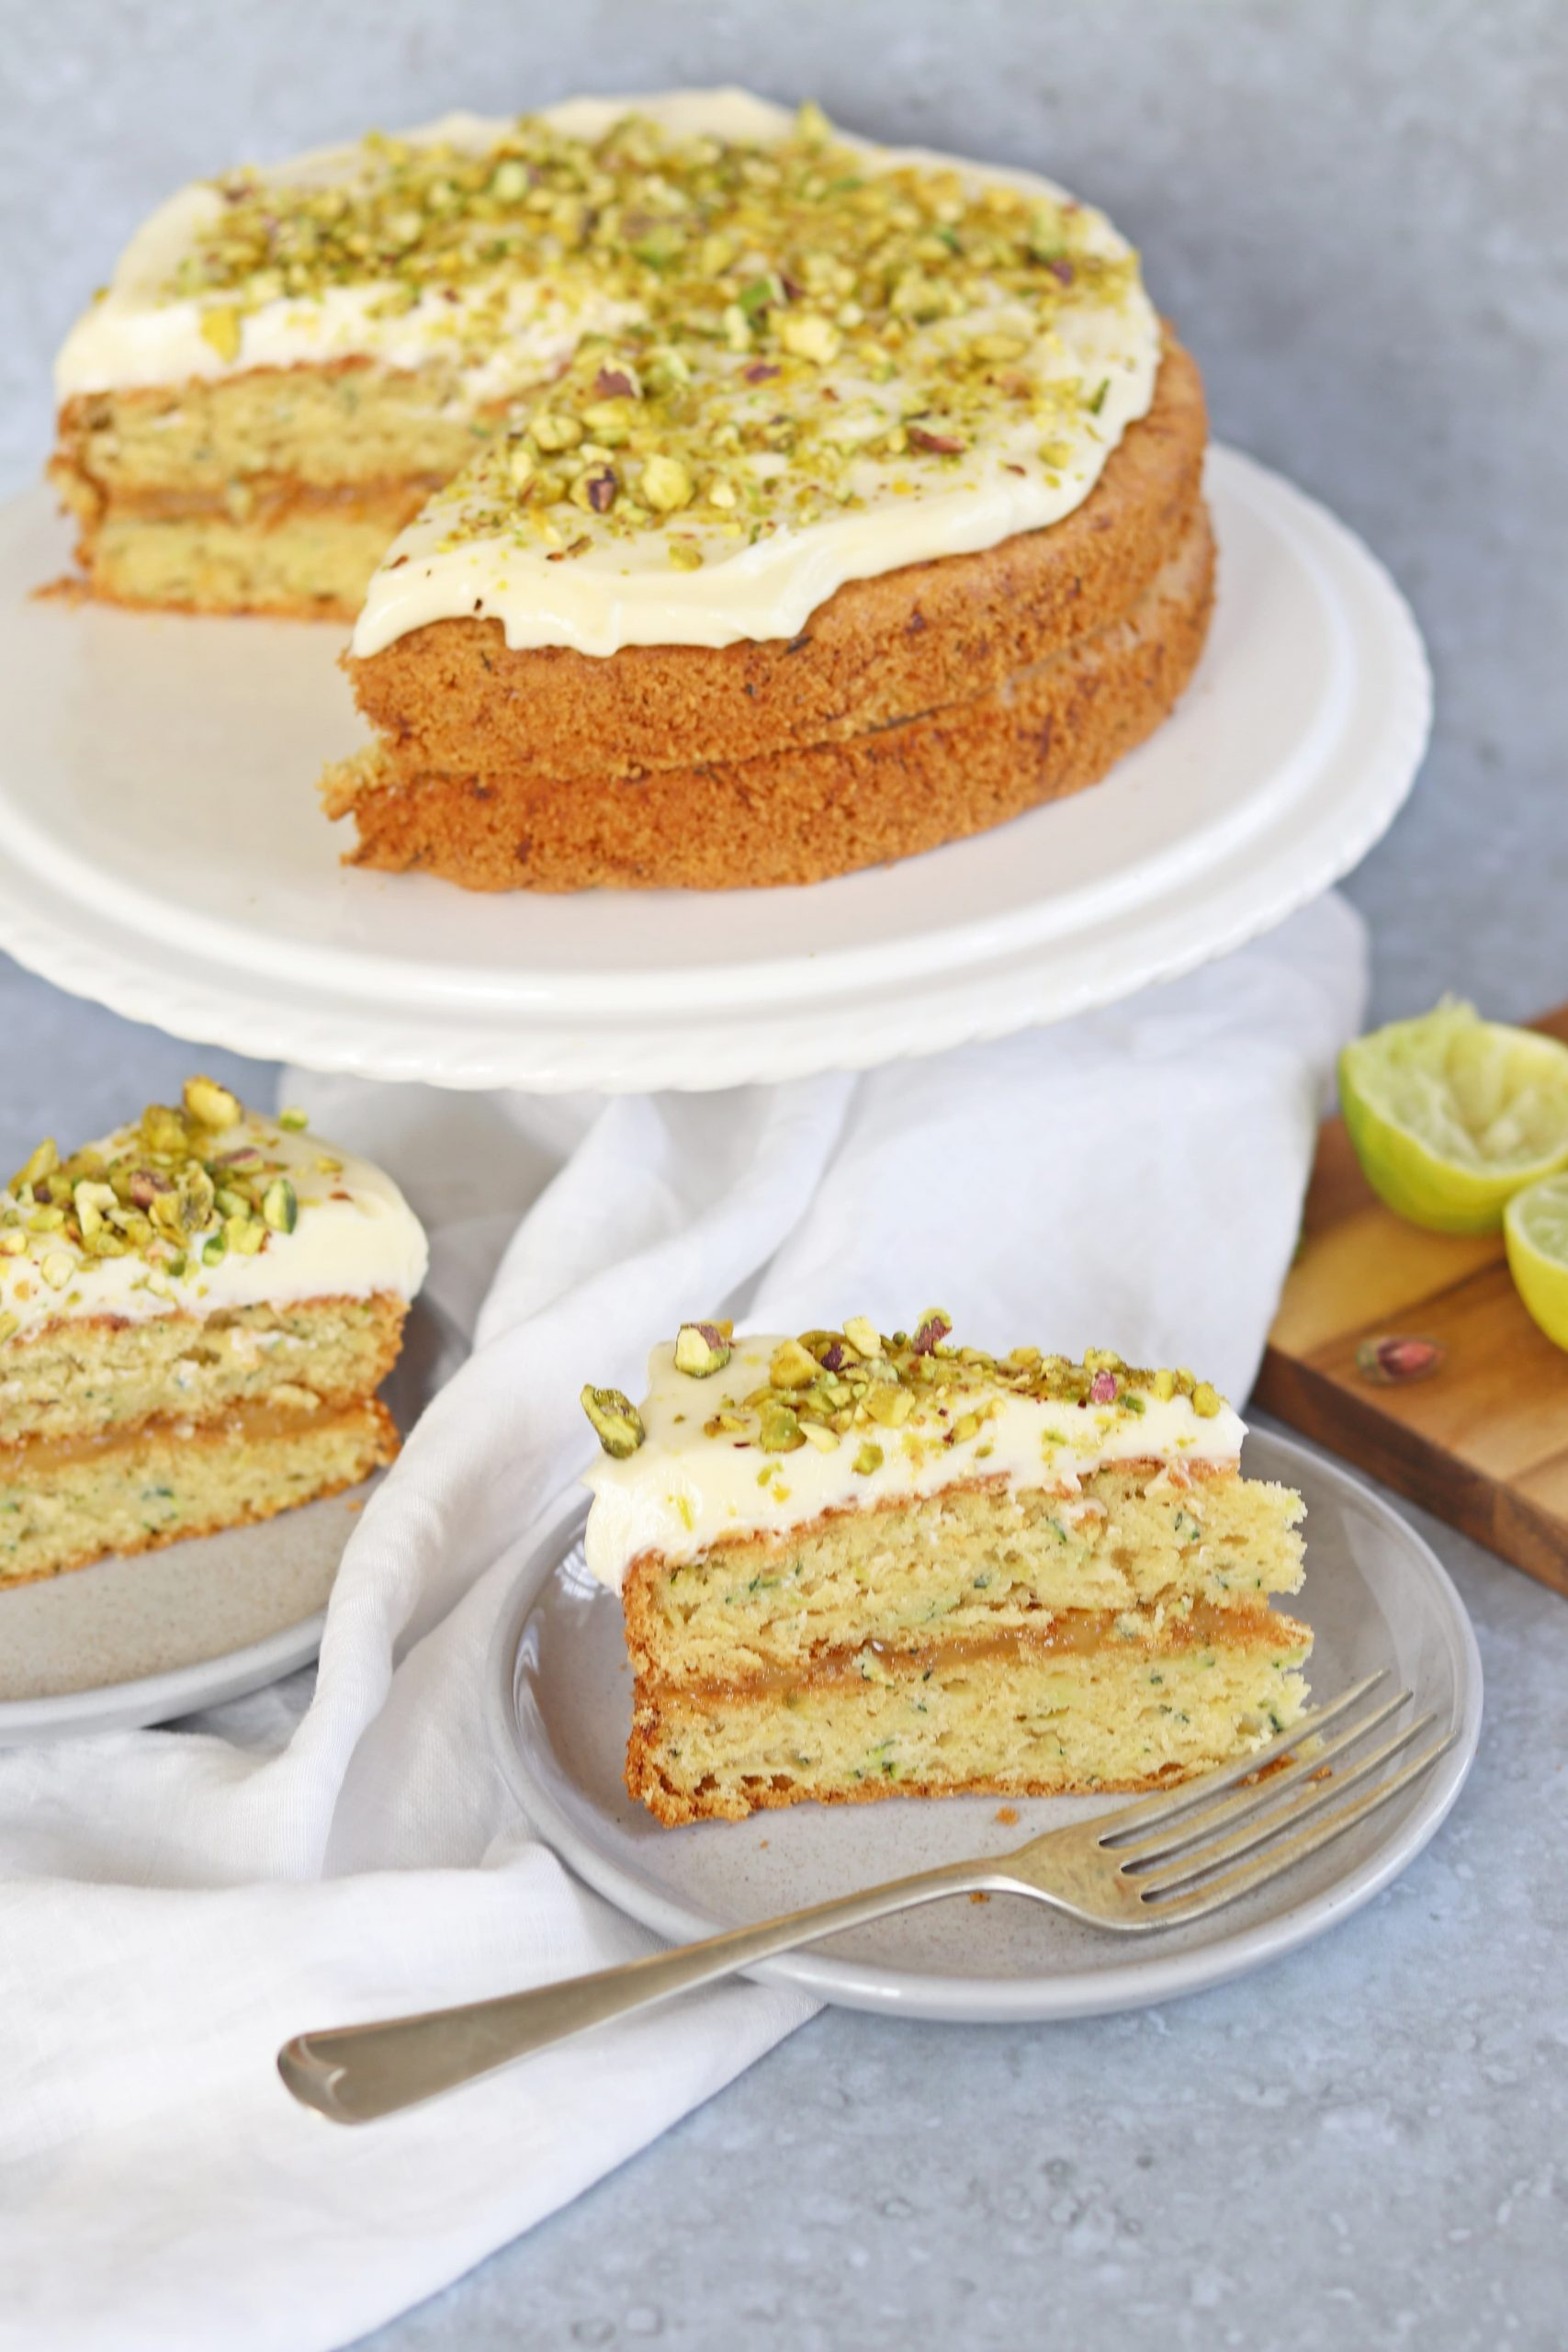 Courgette Cake with Lemon Curd & Cream Cheese Icing